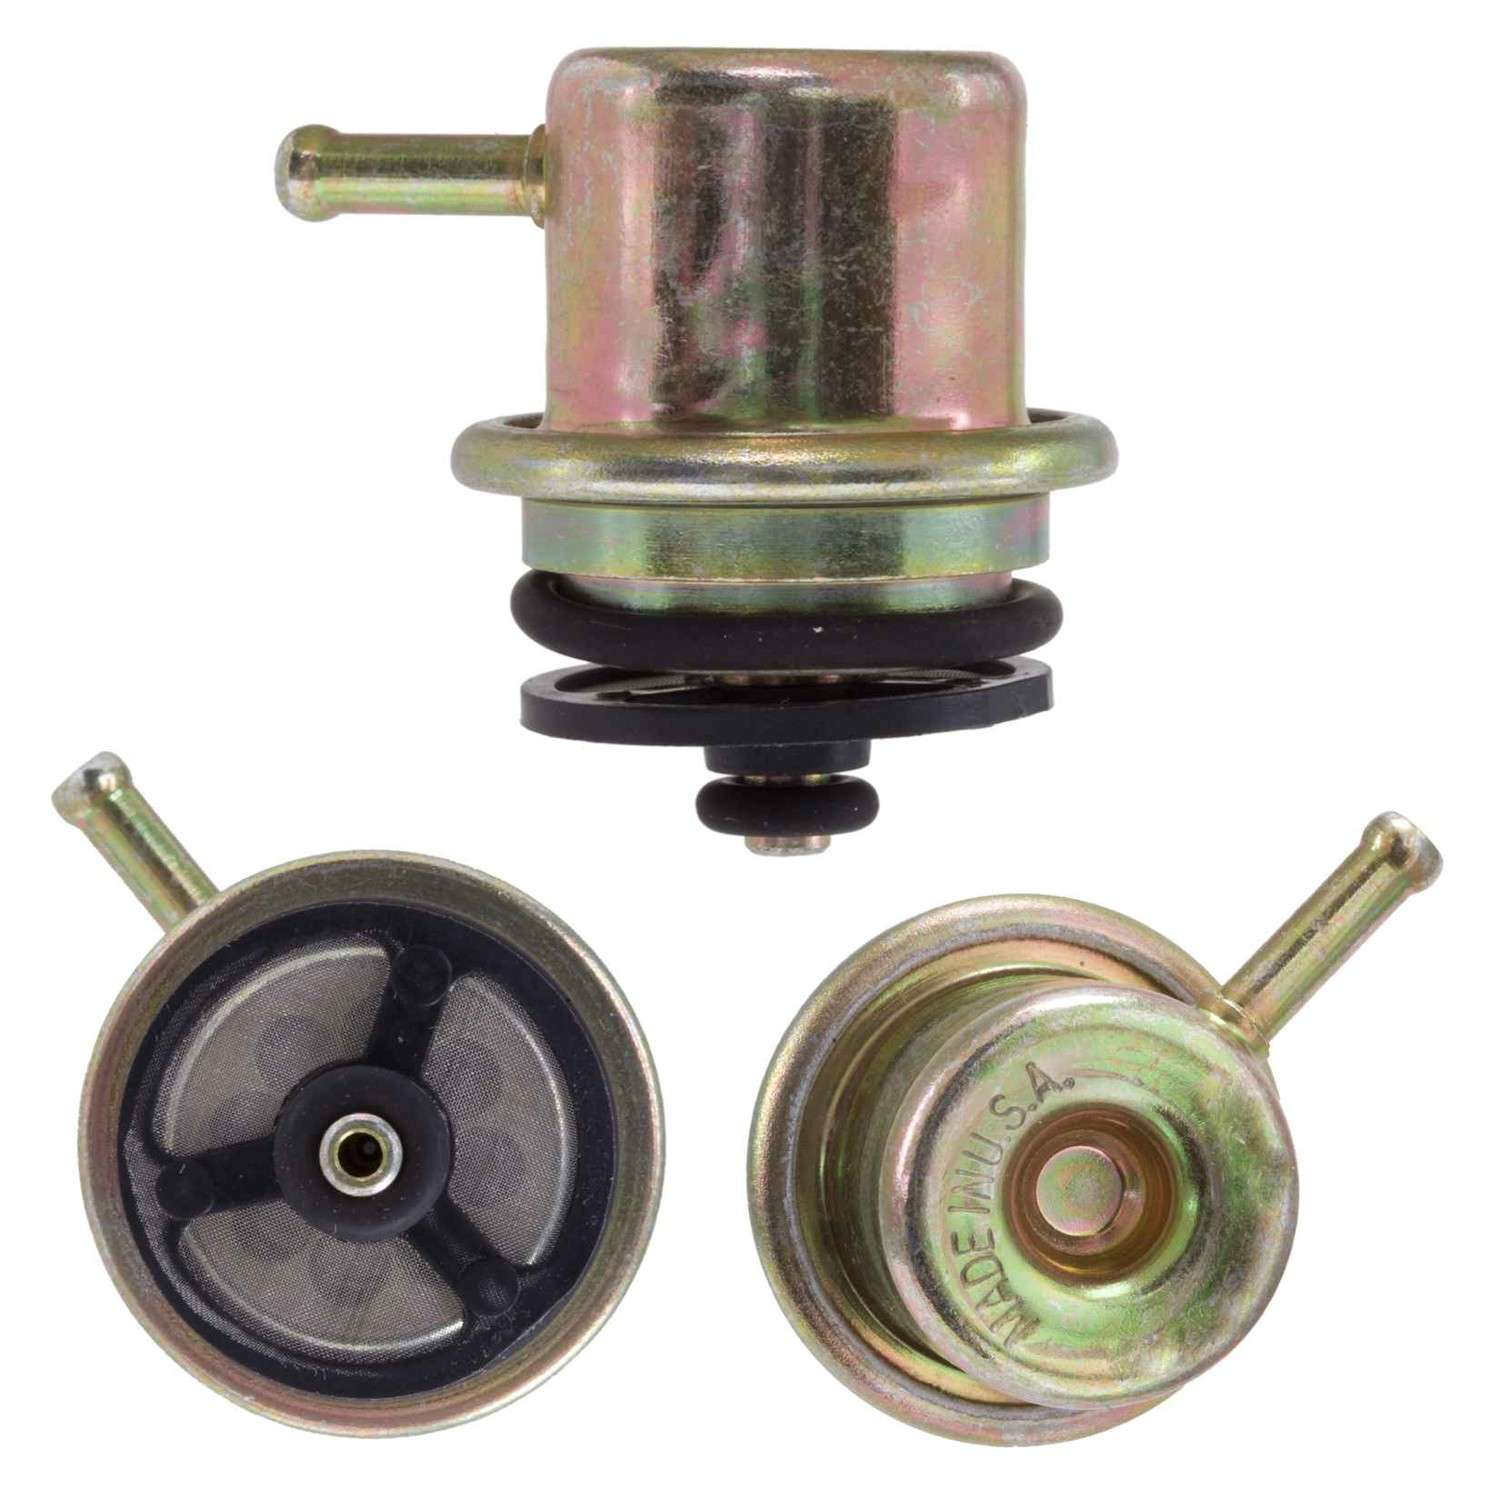 Fuel Injection Pressure Regulator: Fuel Injection Pressure Regulator AIRTEX 5G1070